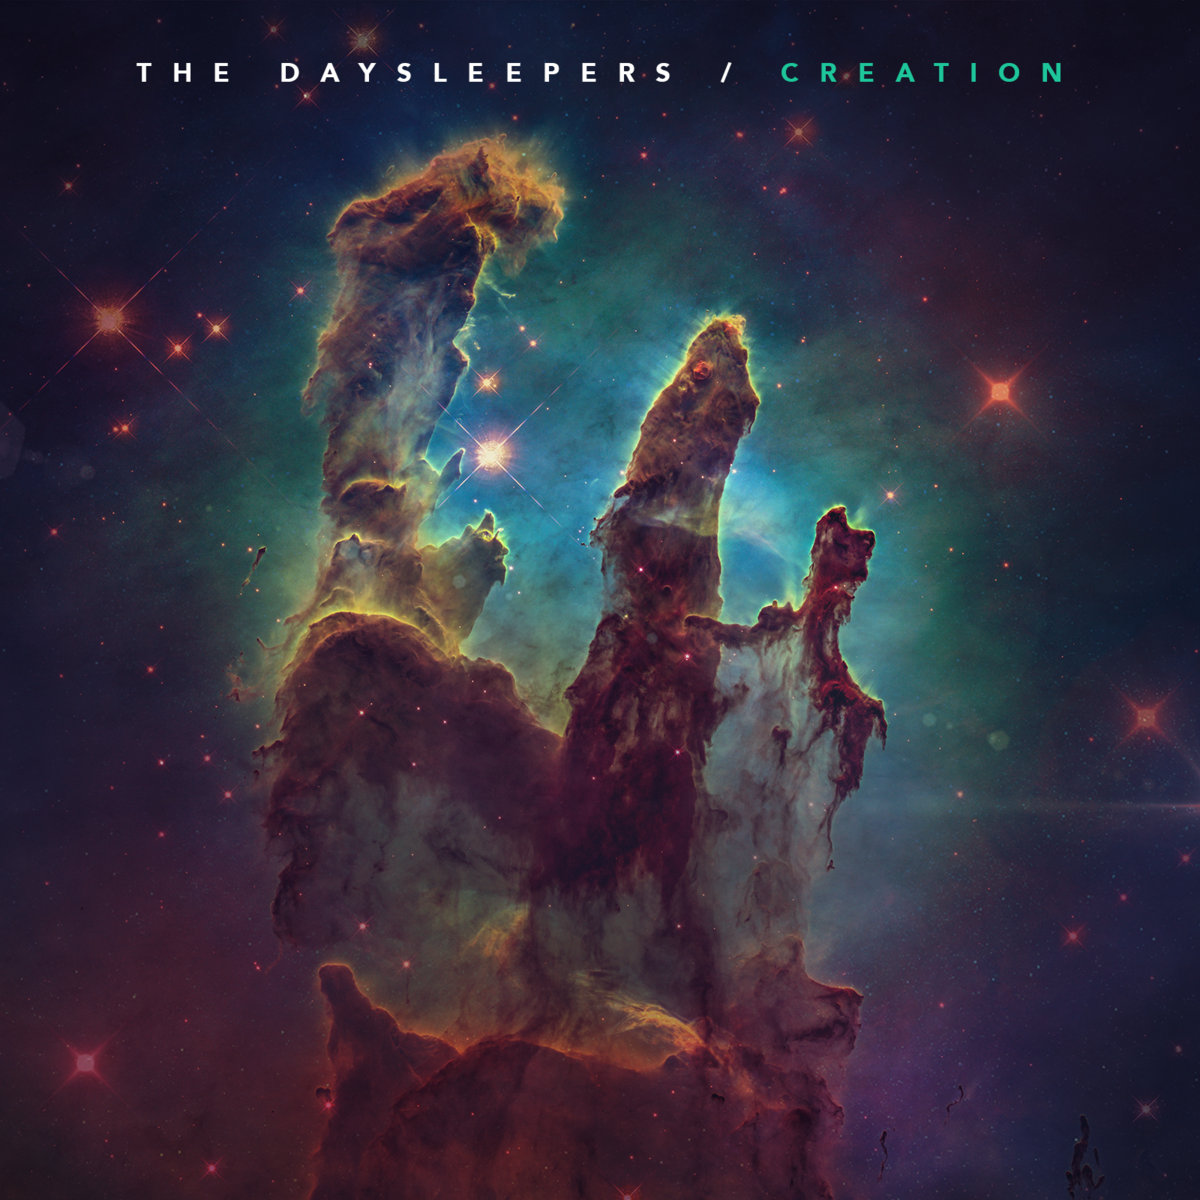 Creation (Single Mix) | The Daysleepers